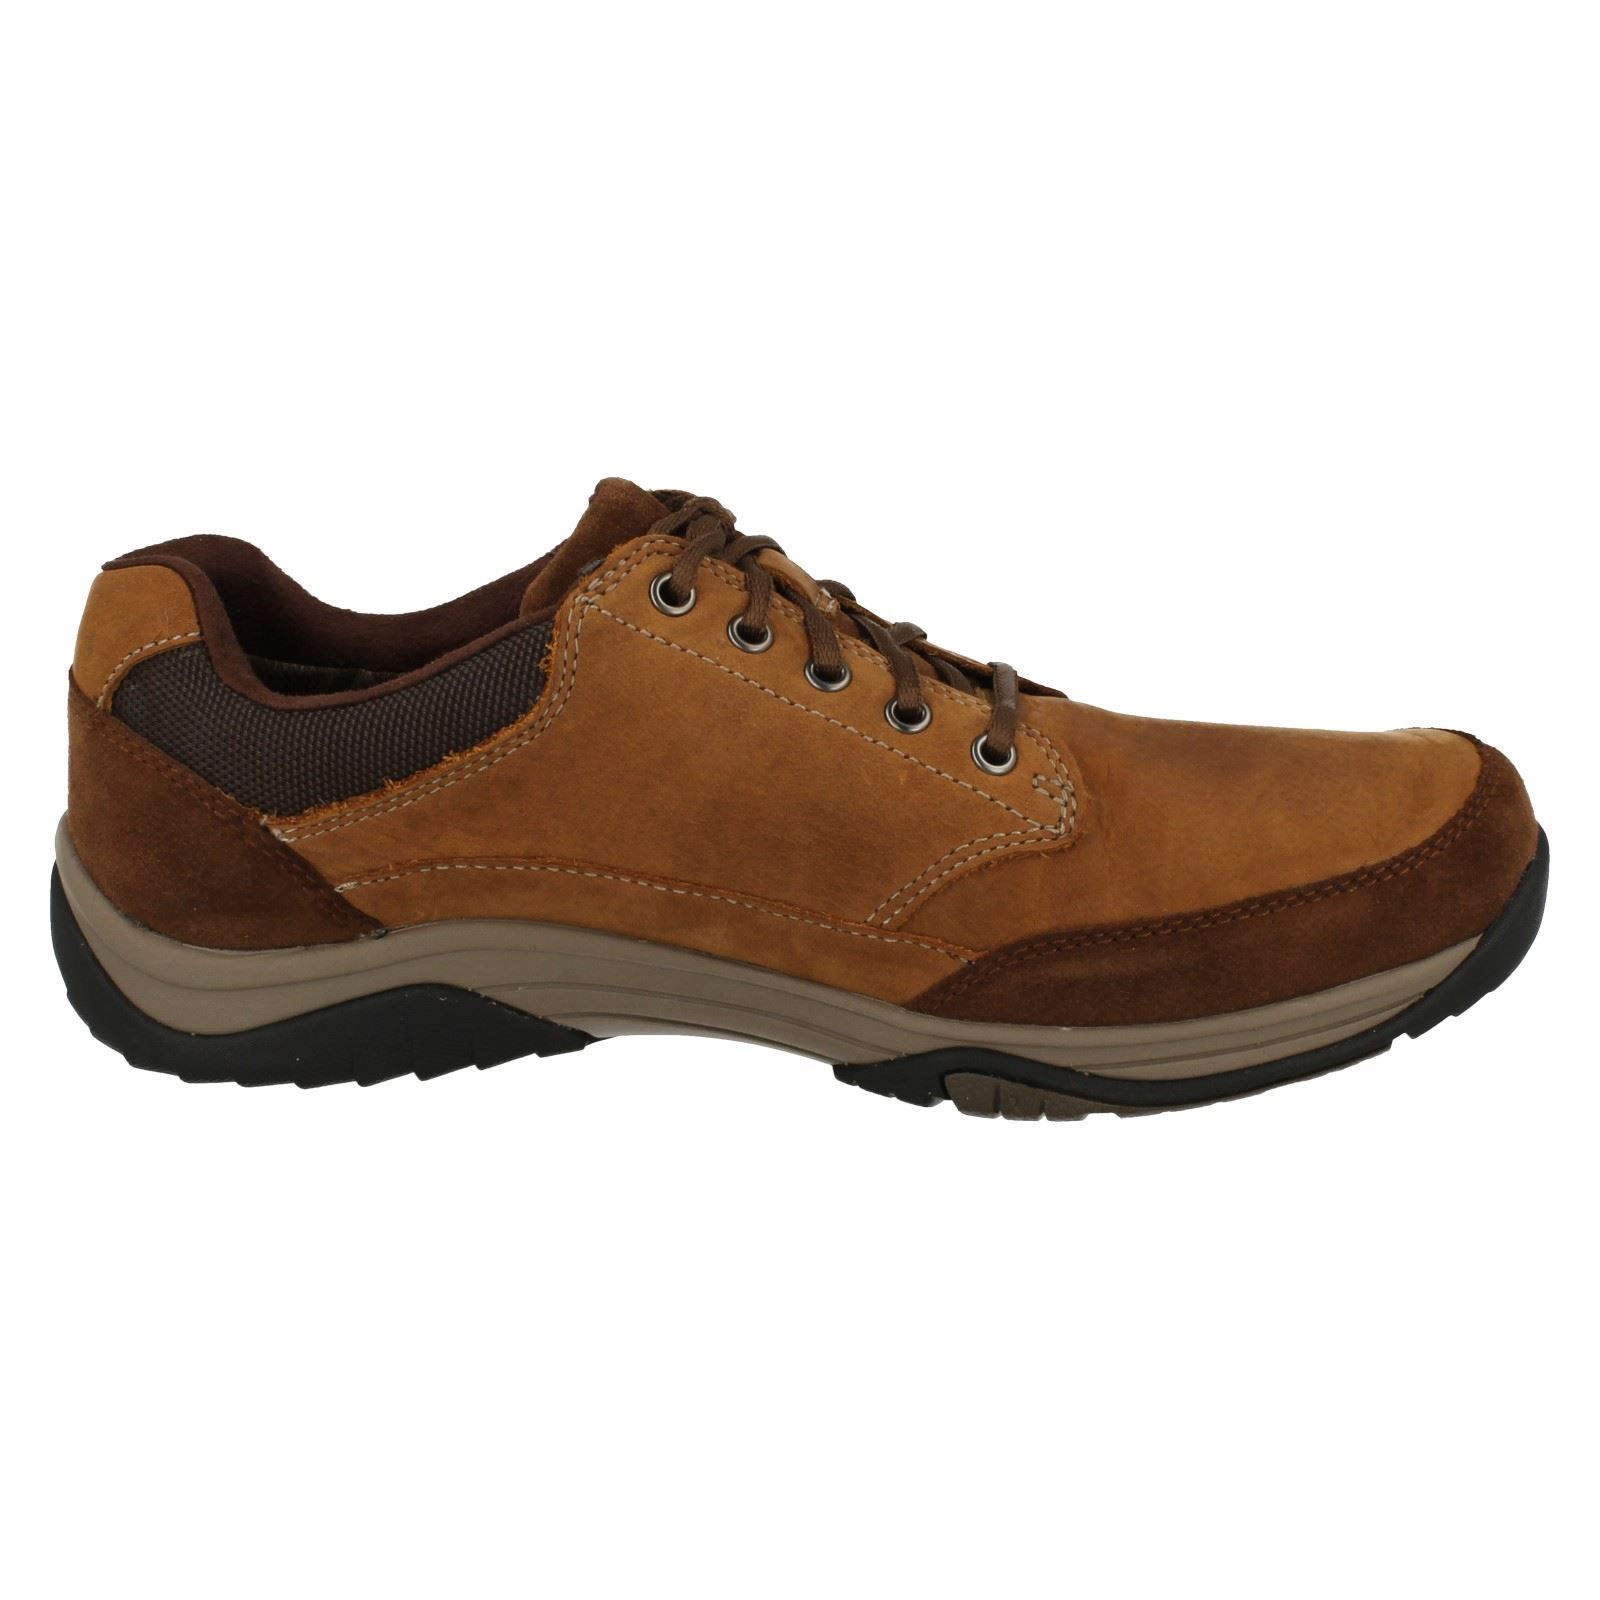 Up Herren Clarks Baystonego GTX Casual Gore-Tex Lace Up  Schuhes db737a